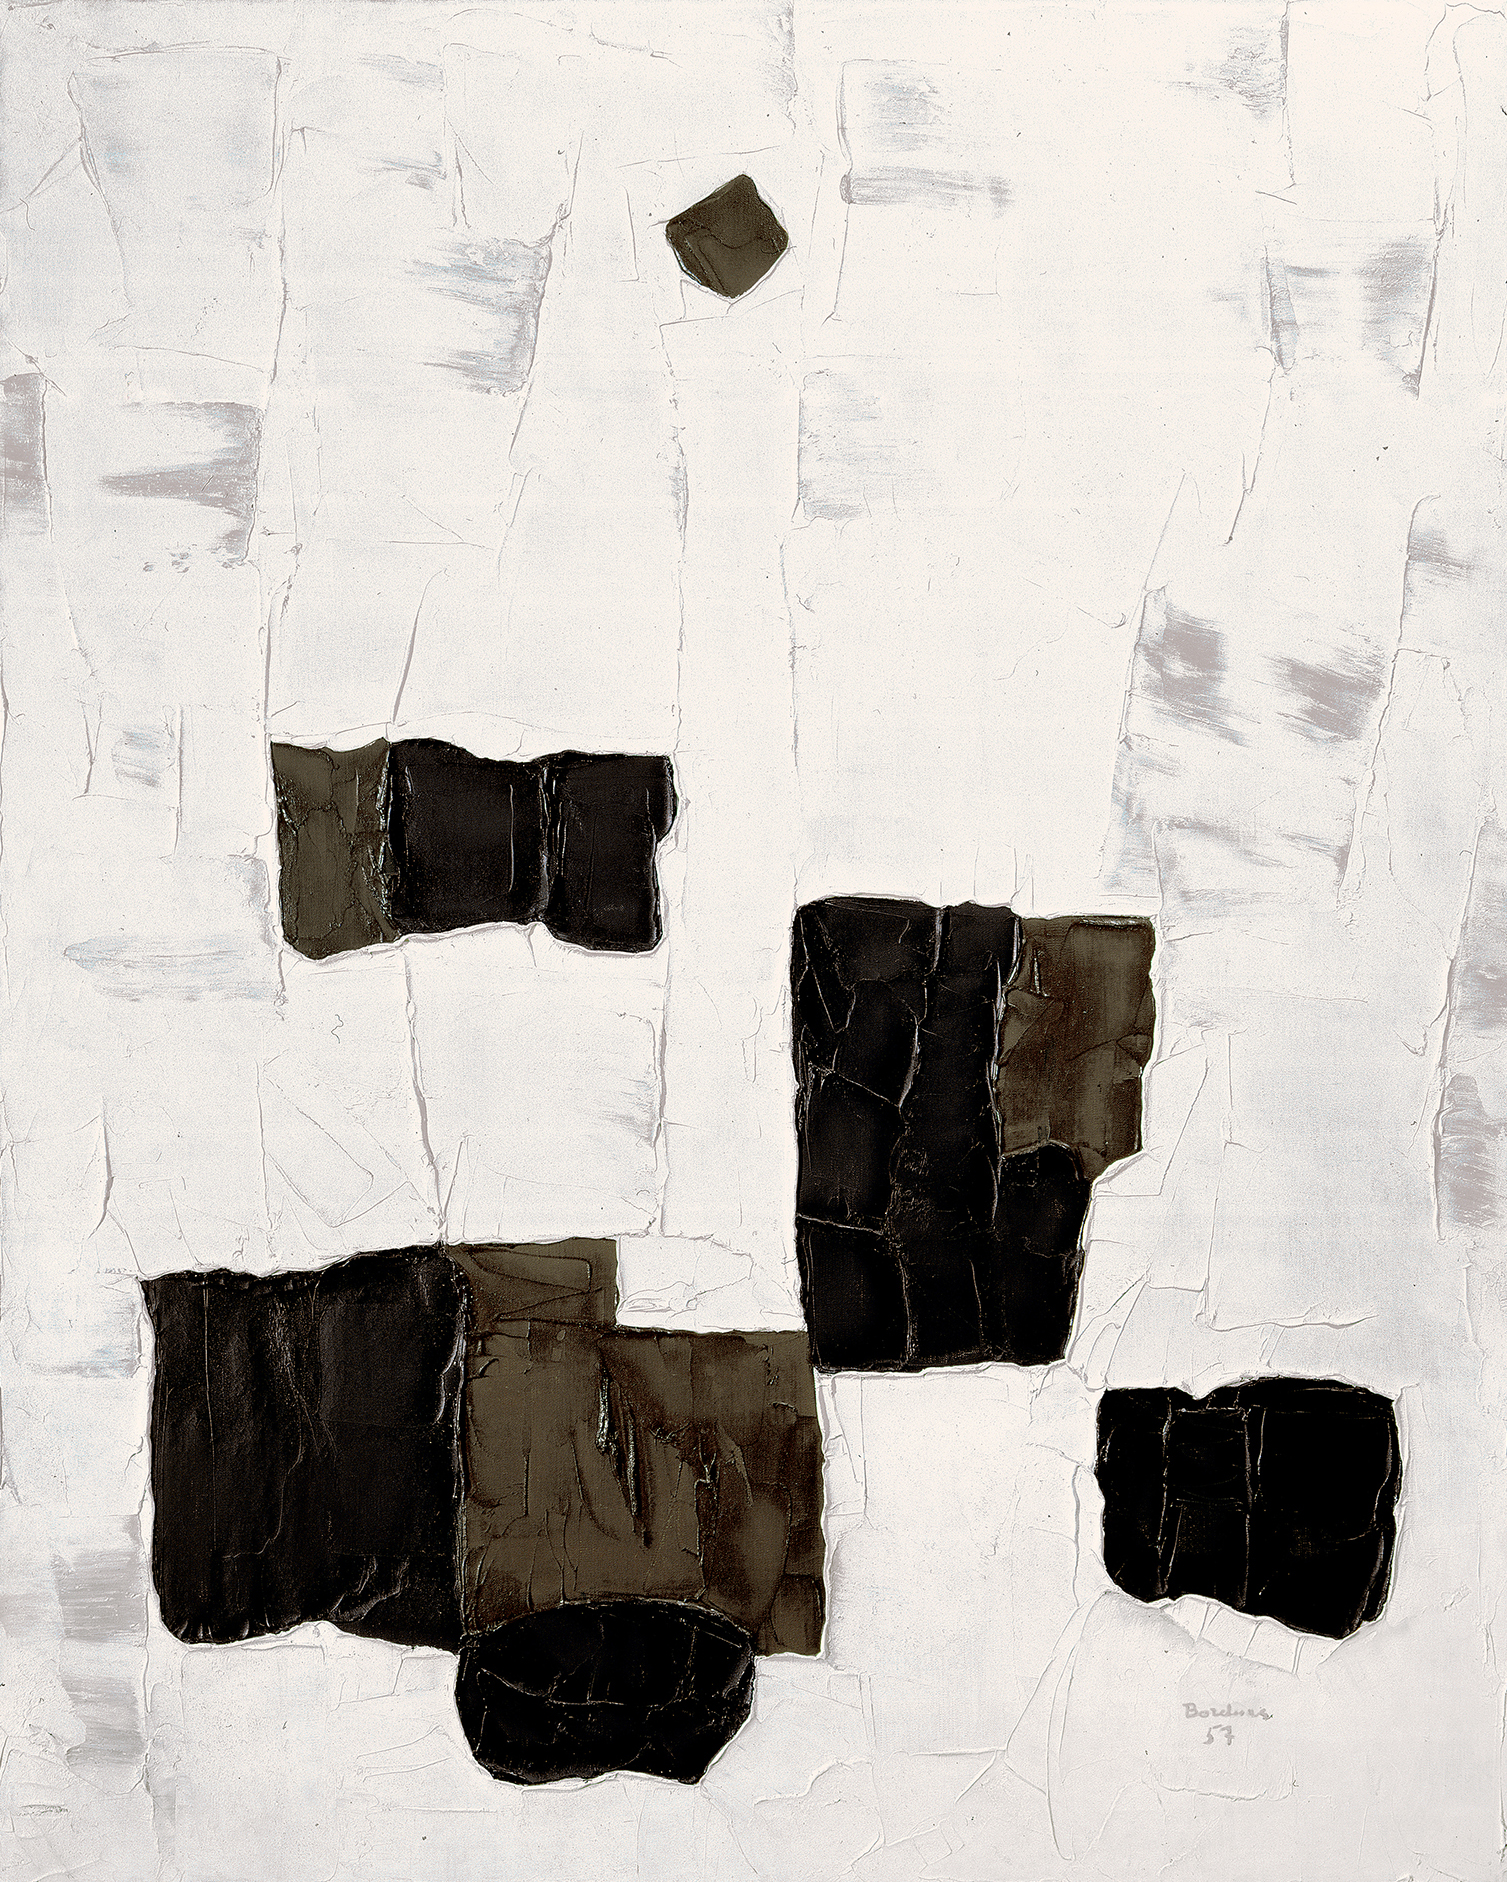 This non-figurative painting features areas of flat black, brown and white. The dark masses concentrated in the lower portion stand out from the textured white surface. A small black patch appears near the top.